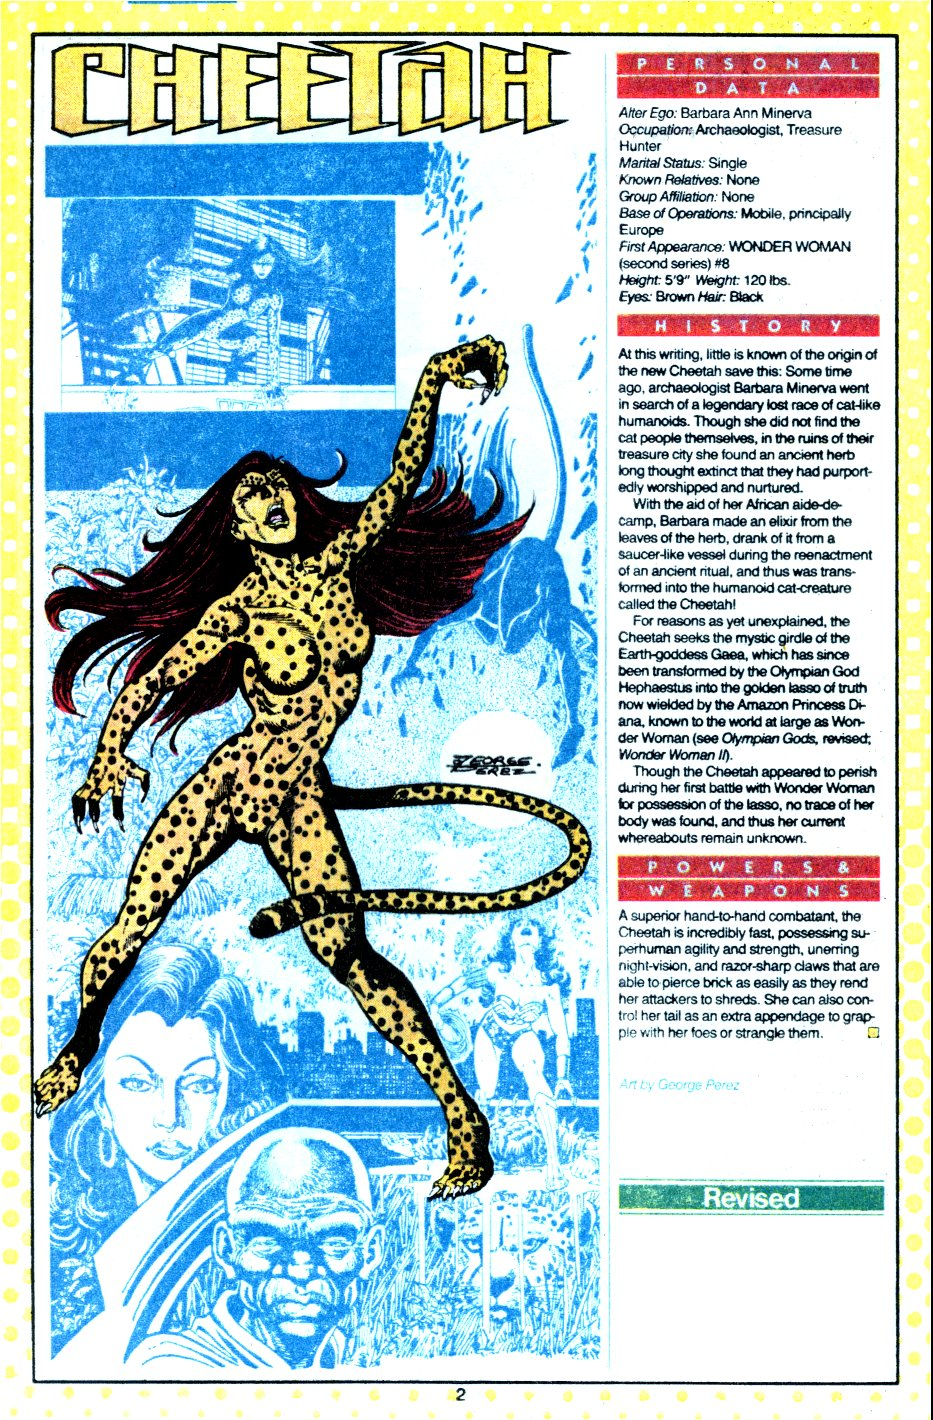 Cheetah by George Perez - Who's Who: Update '87, vol. 2